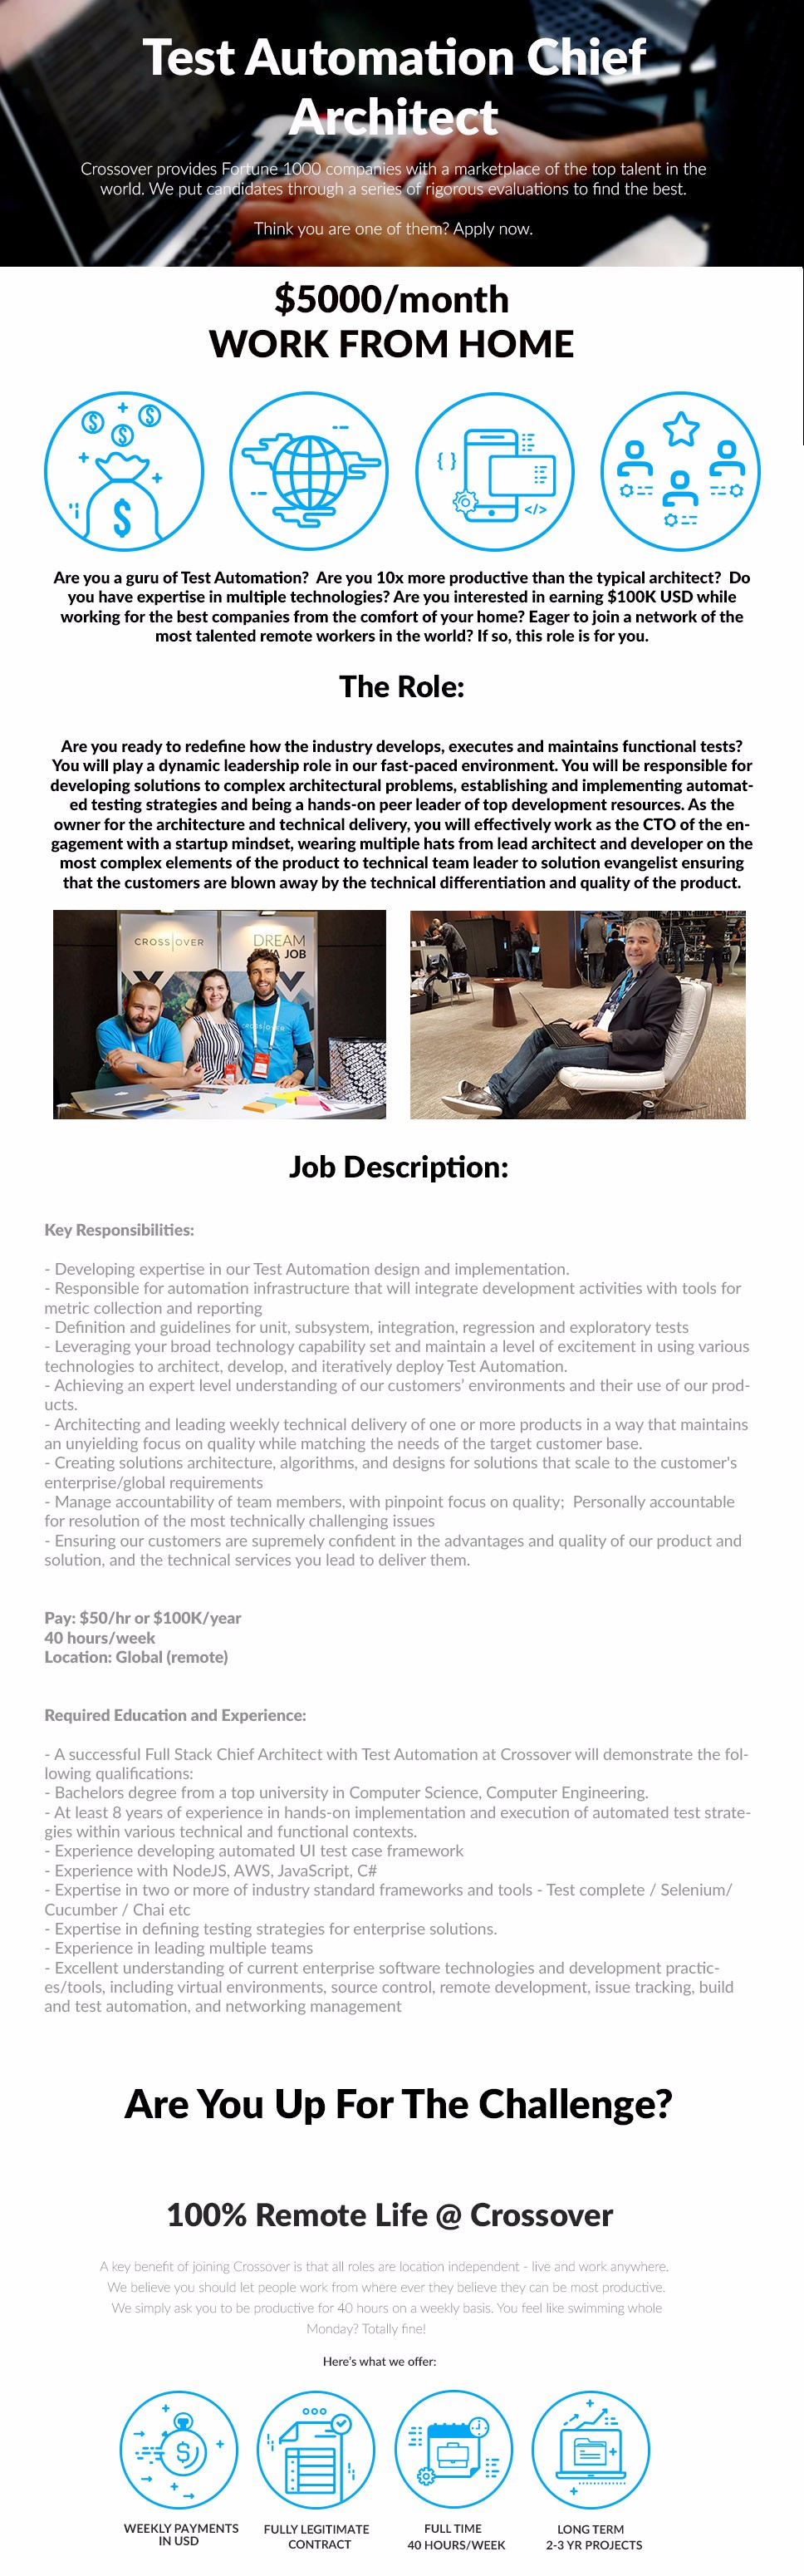 2126 -Test Automation Chief Architect